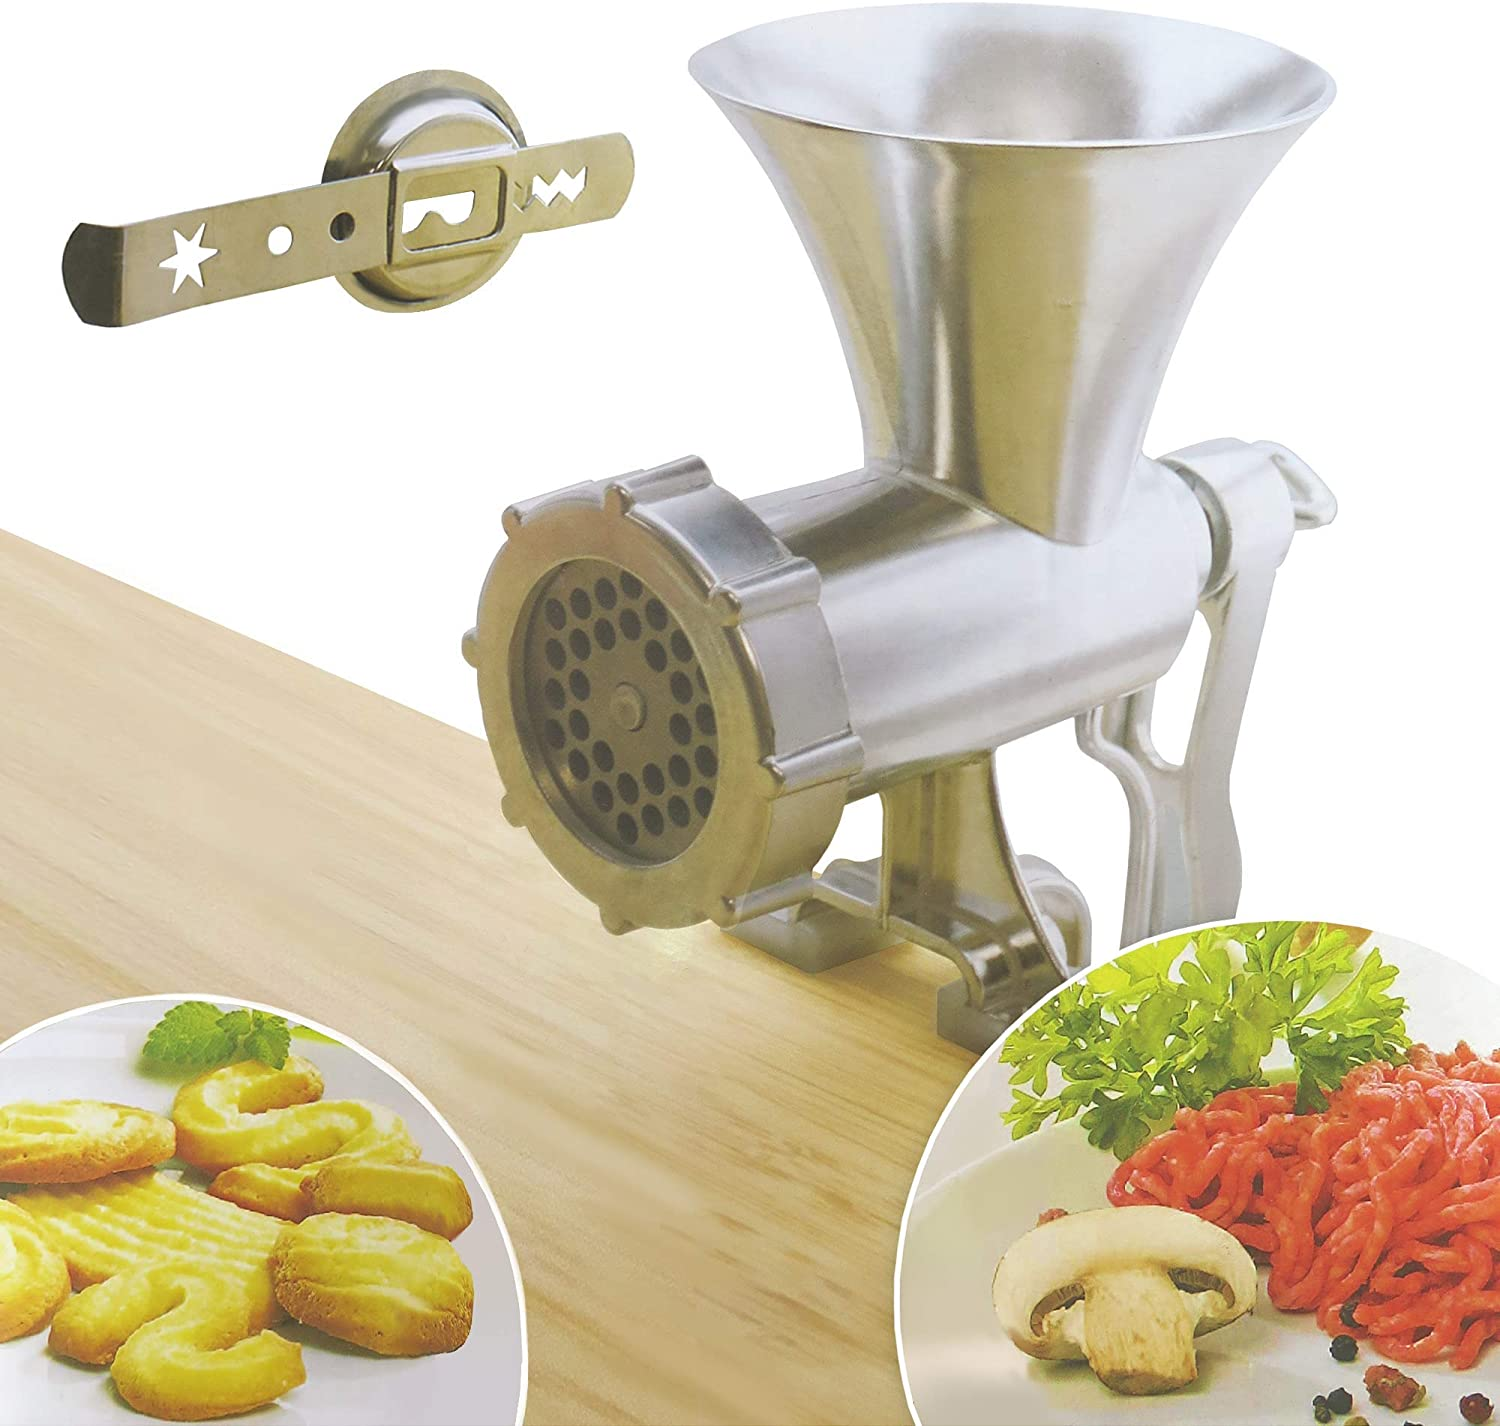 Tredoni Desk Mounted Manual Meat/Vegetable Mincer Grinder, Aluminum Biscuit Machine Cookie Maker